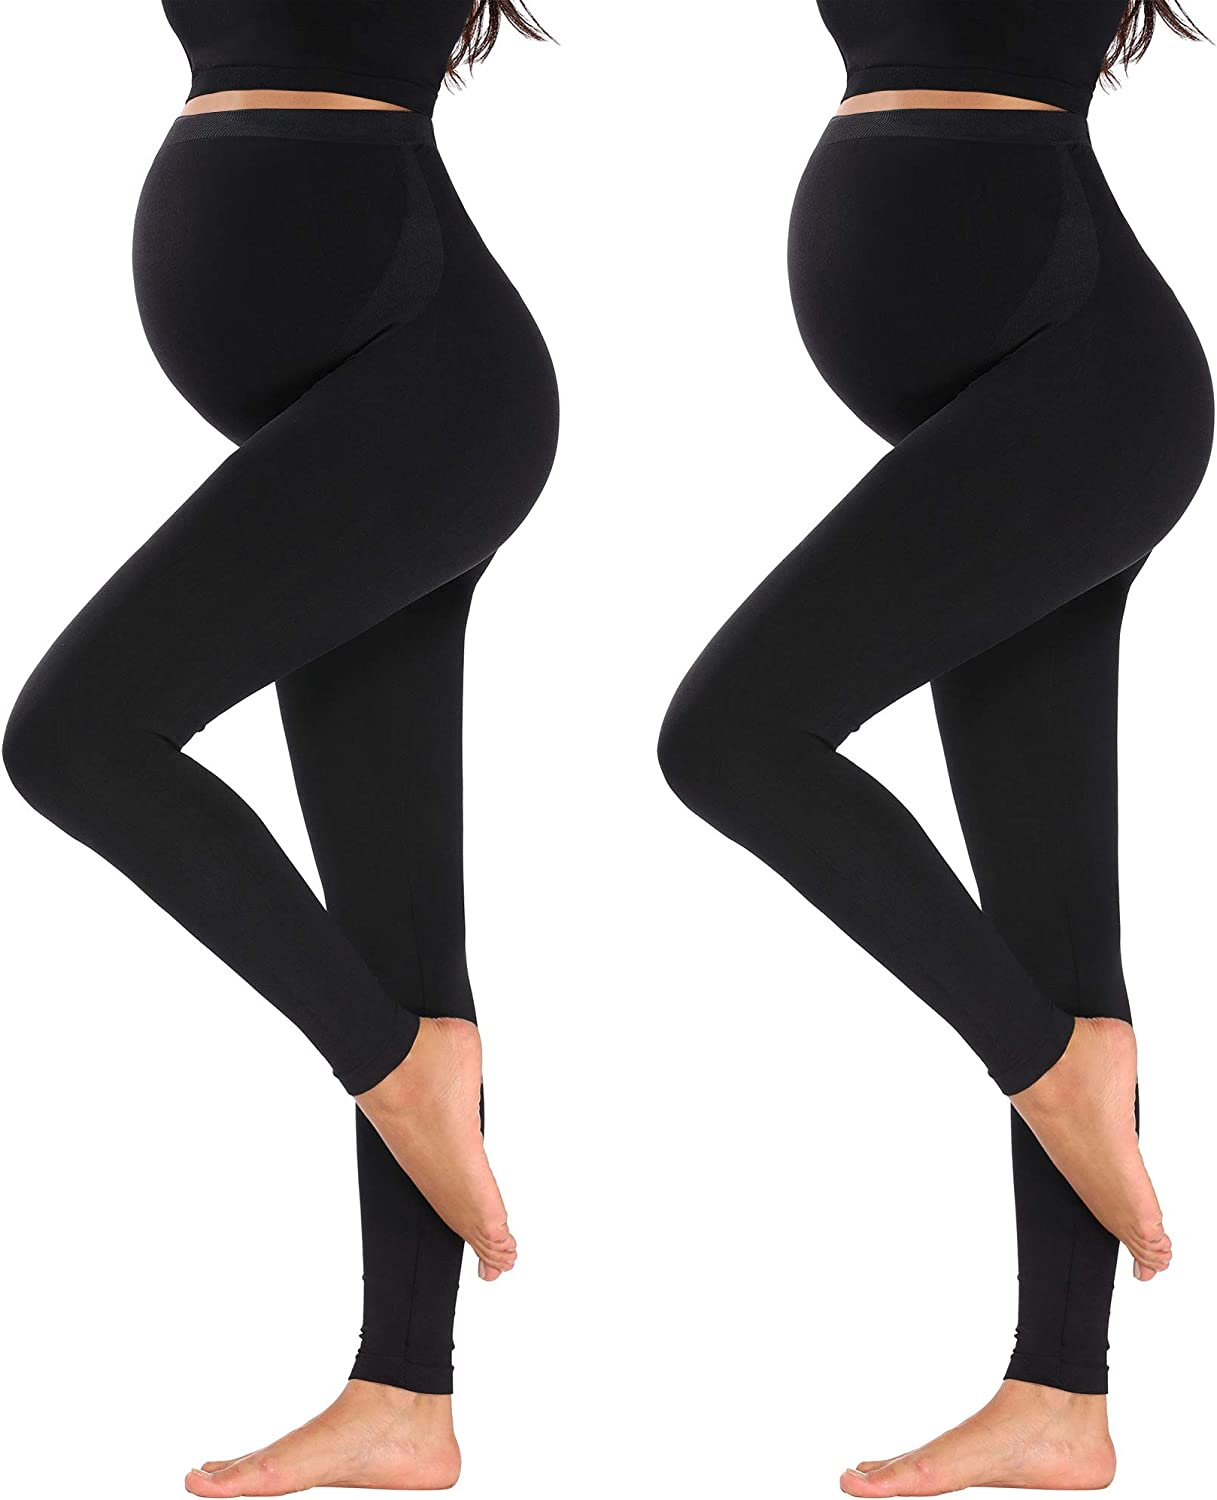 Maternity Leggings Over The Belly Extra Pants Extender Not See Through Maternity Yoga Pants For All Stages Of Pregnancy At Amazon Women S Clothing Store